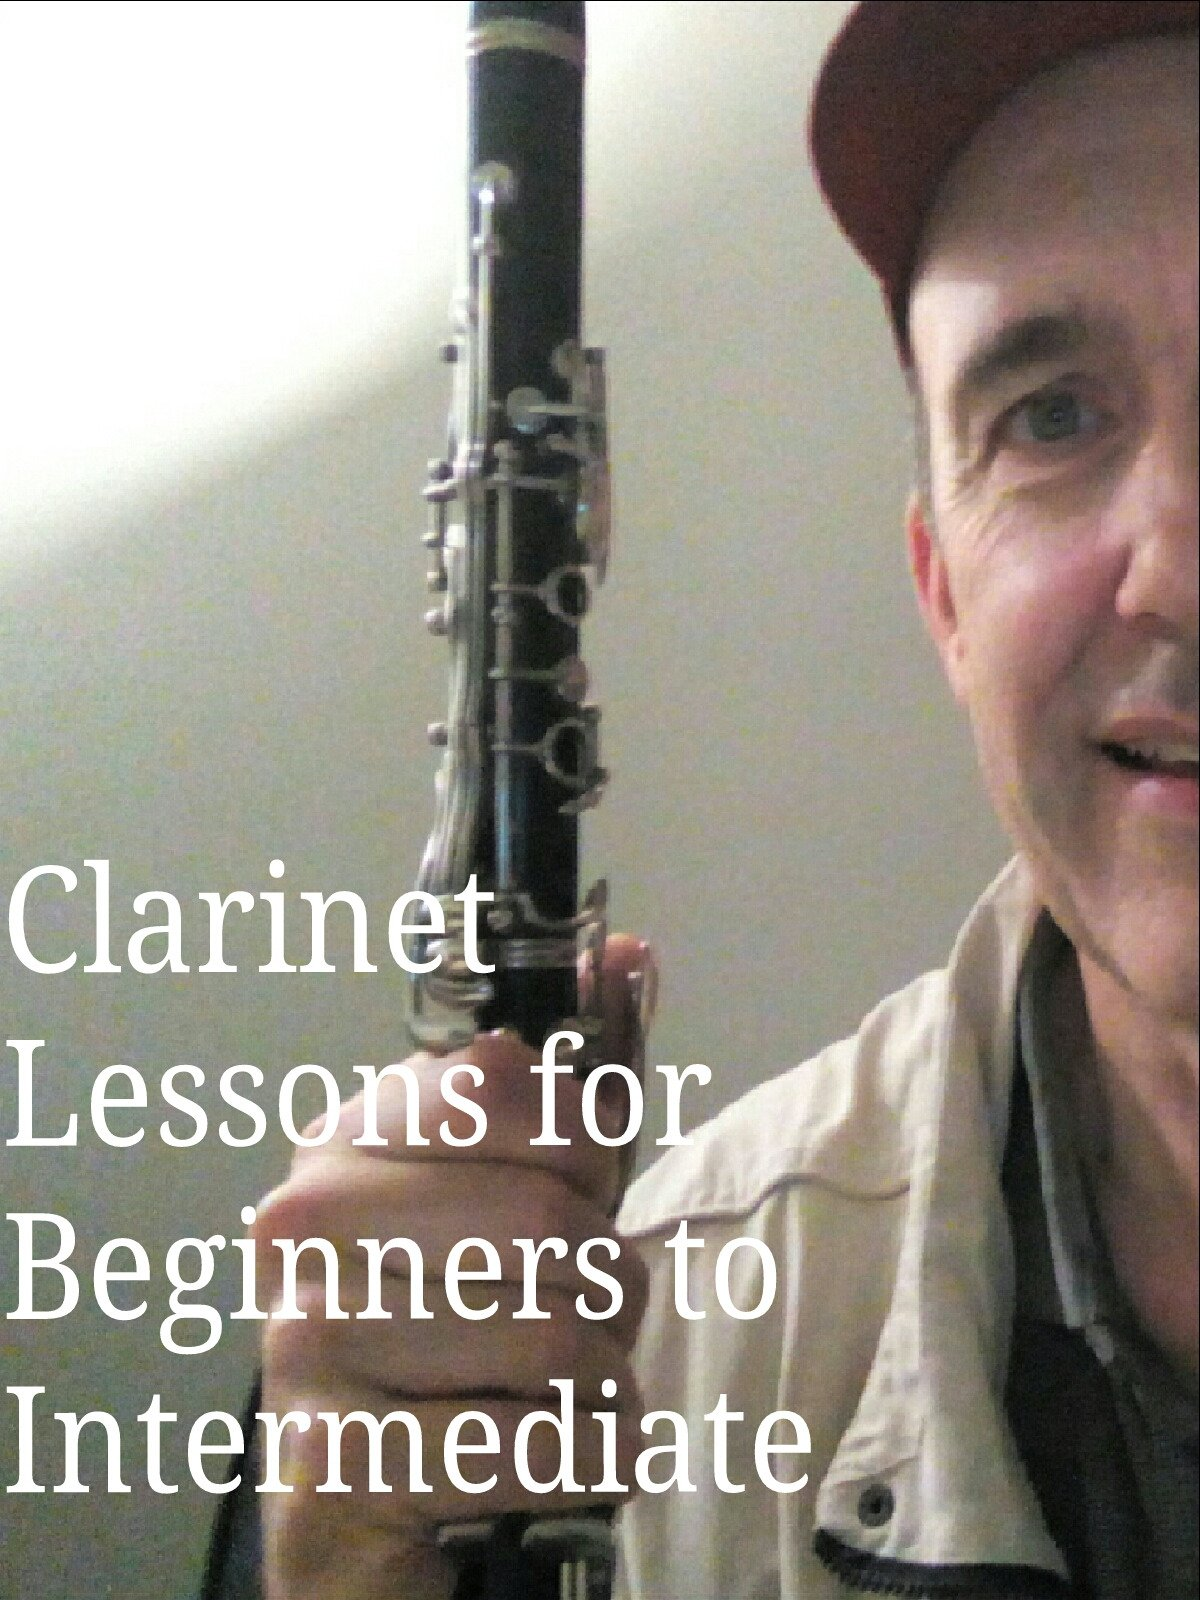 Clarinet Lessons for Beginners to Intermediate